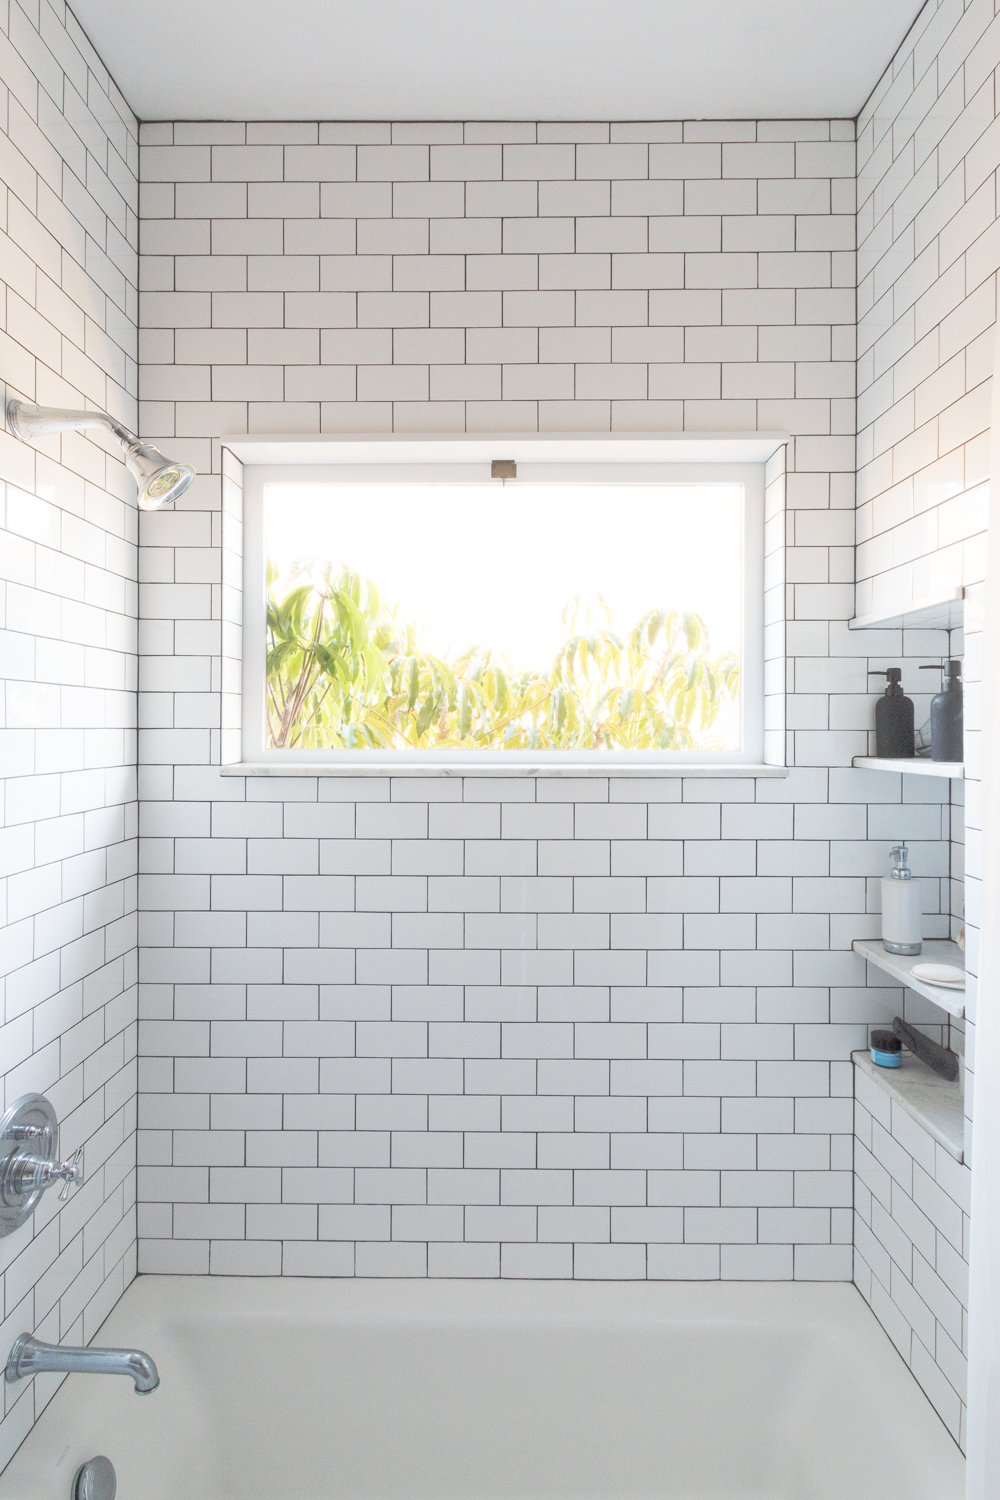 Classic tile in the bathroom the gold hive subway tile to the ceiling in a shower dailygadgetfo Choice Image